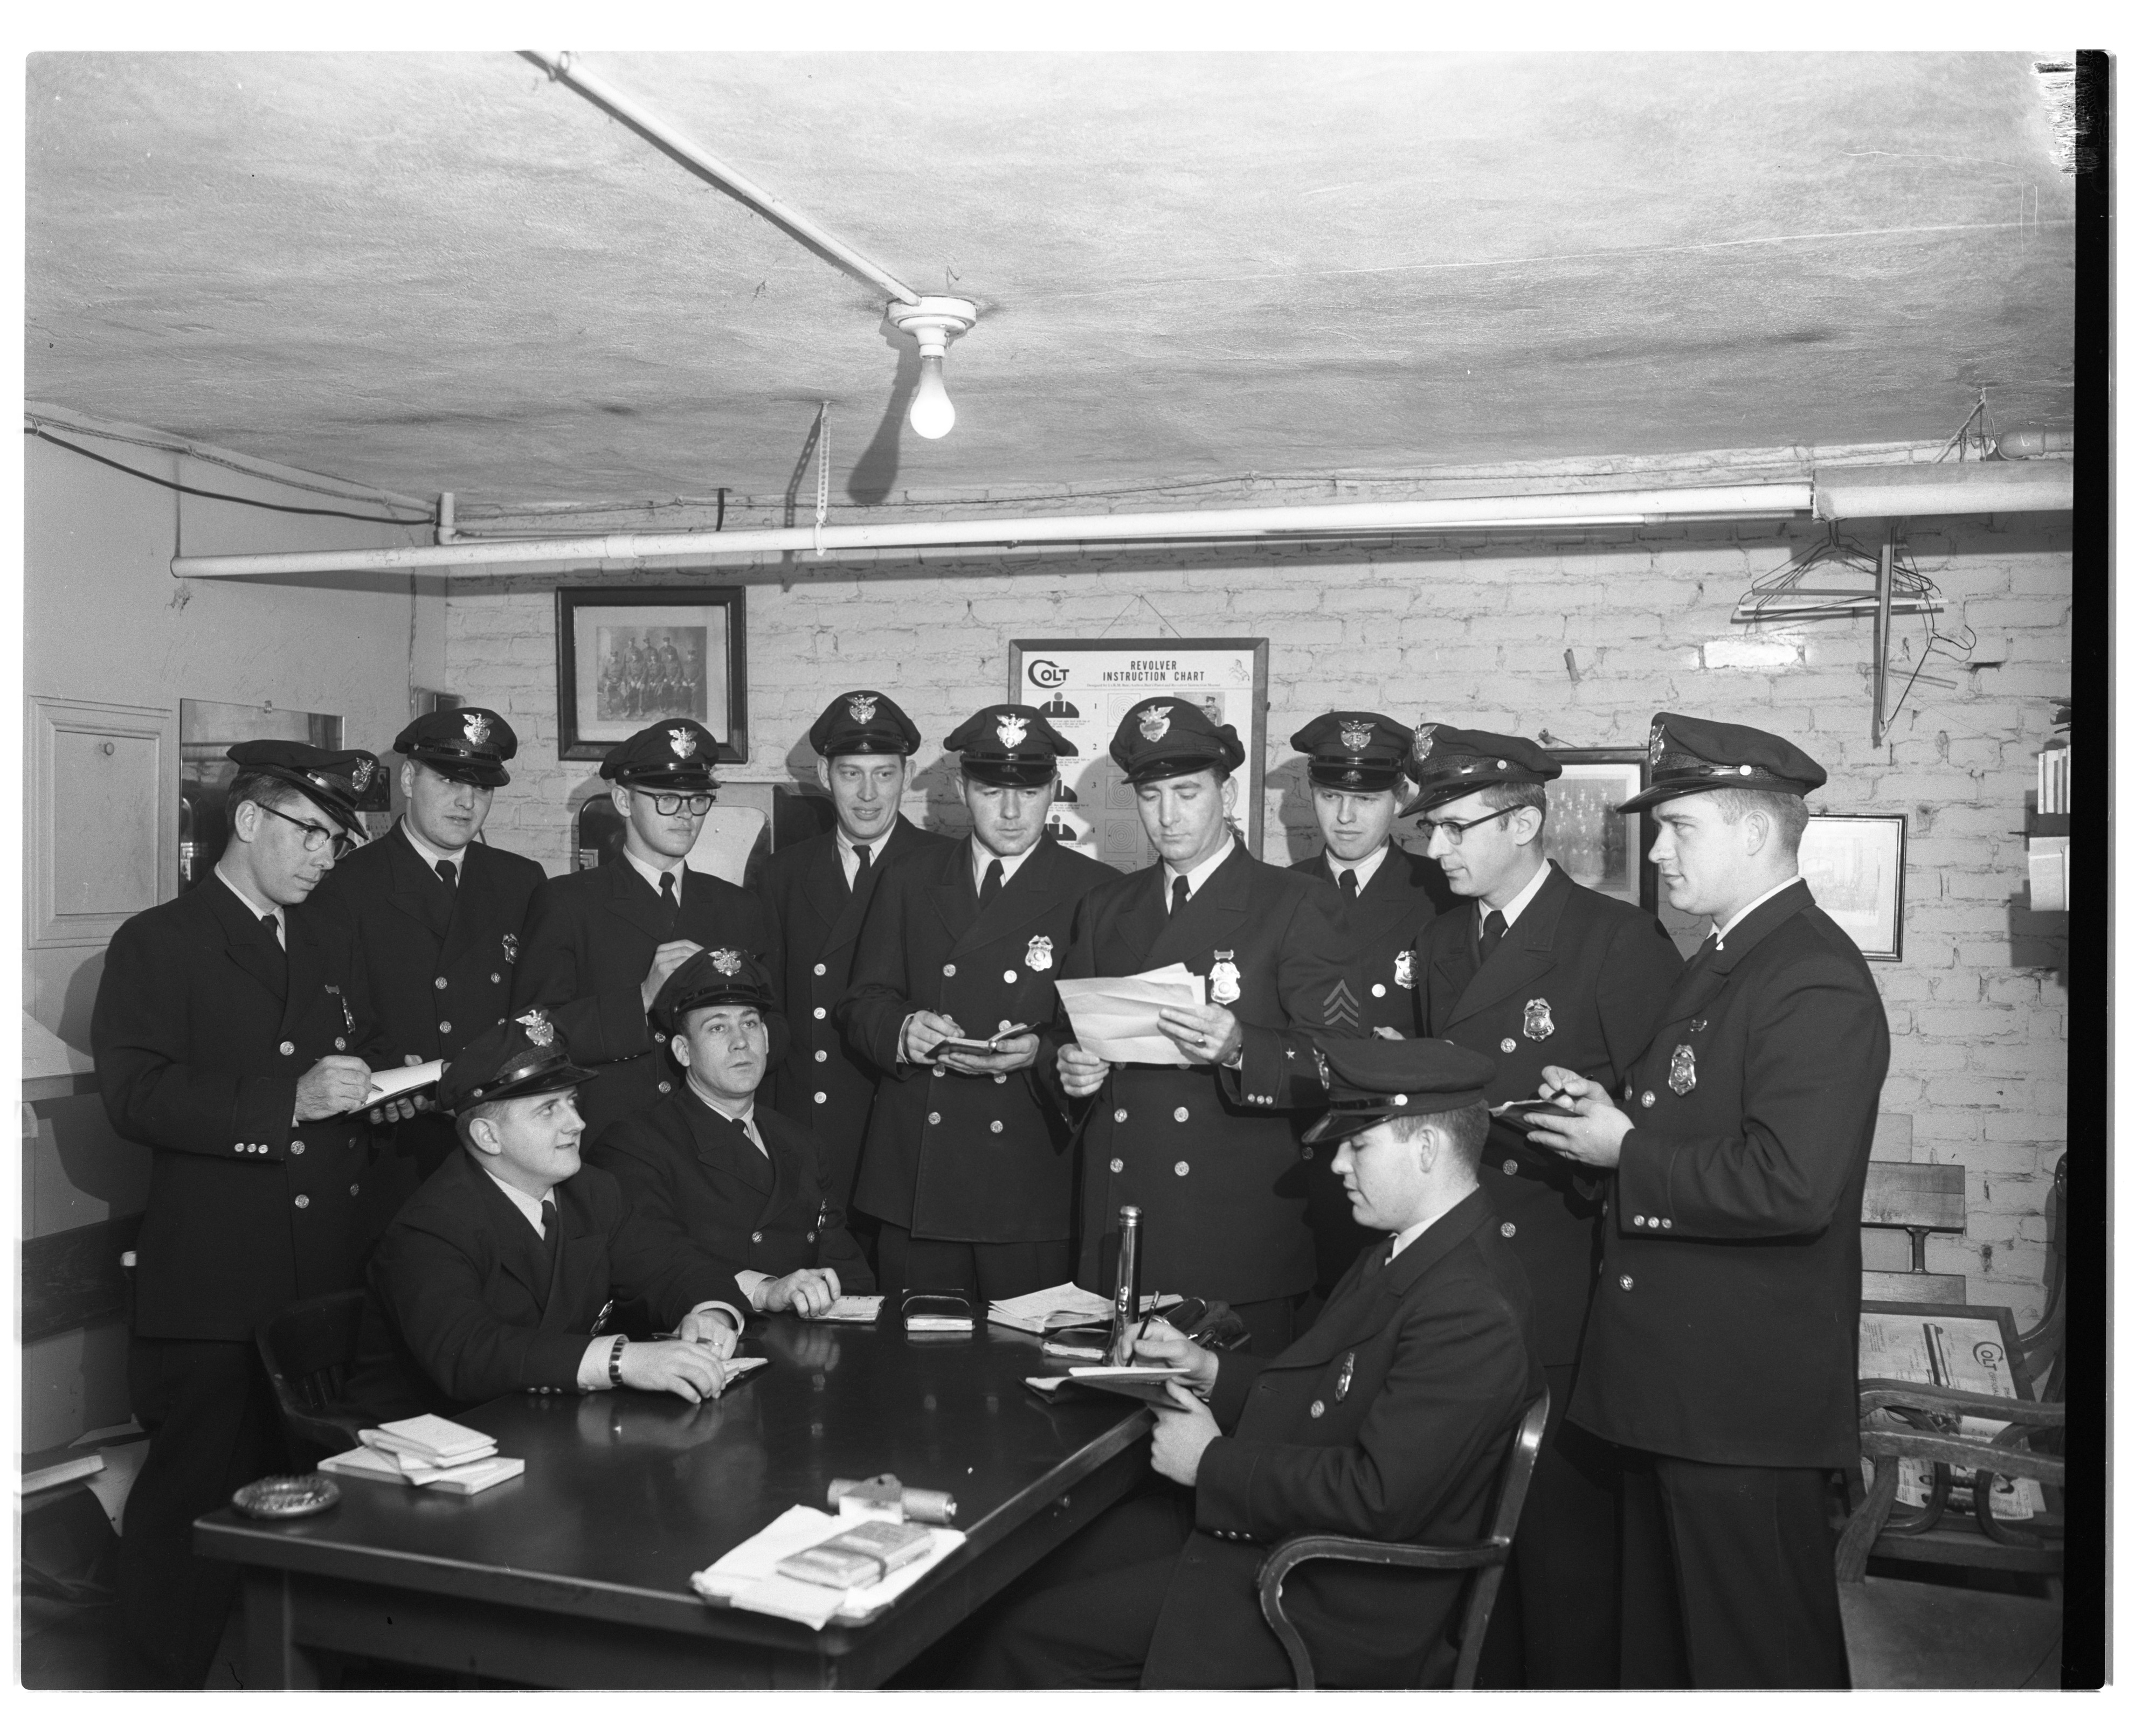 Shift Change At the Ann Arbor Police Department, May 1958 image